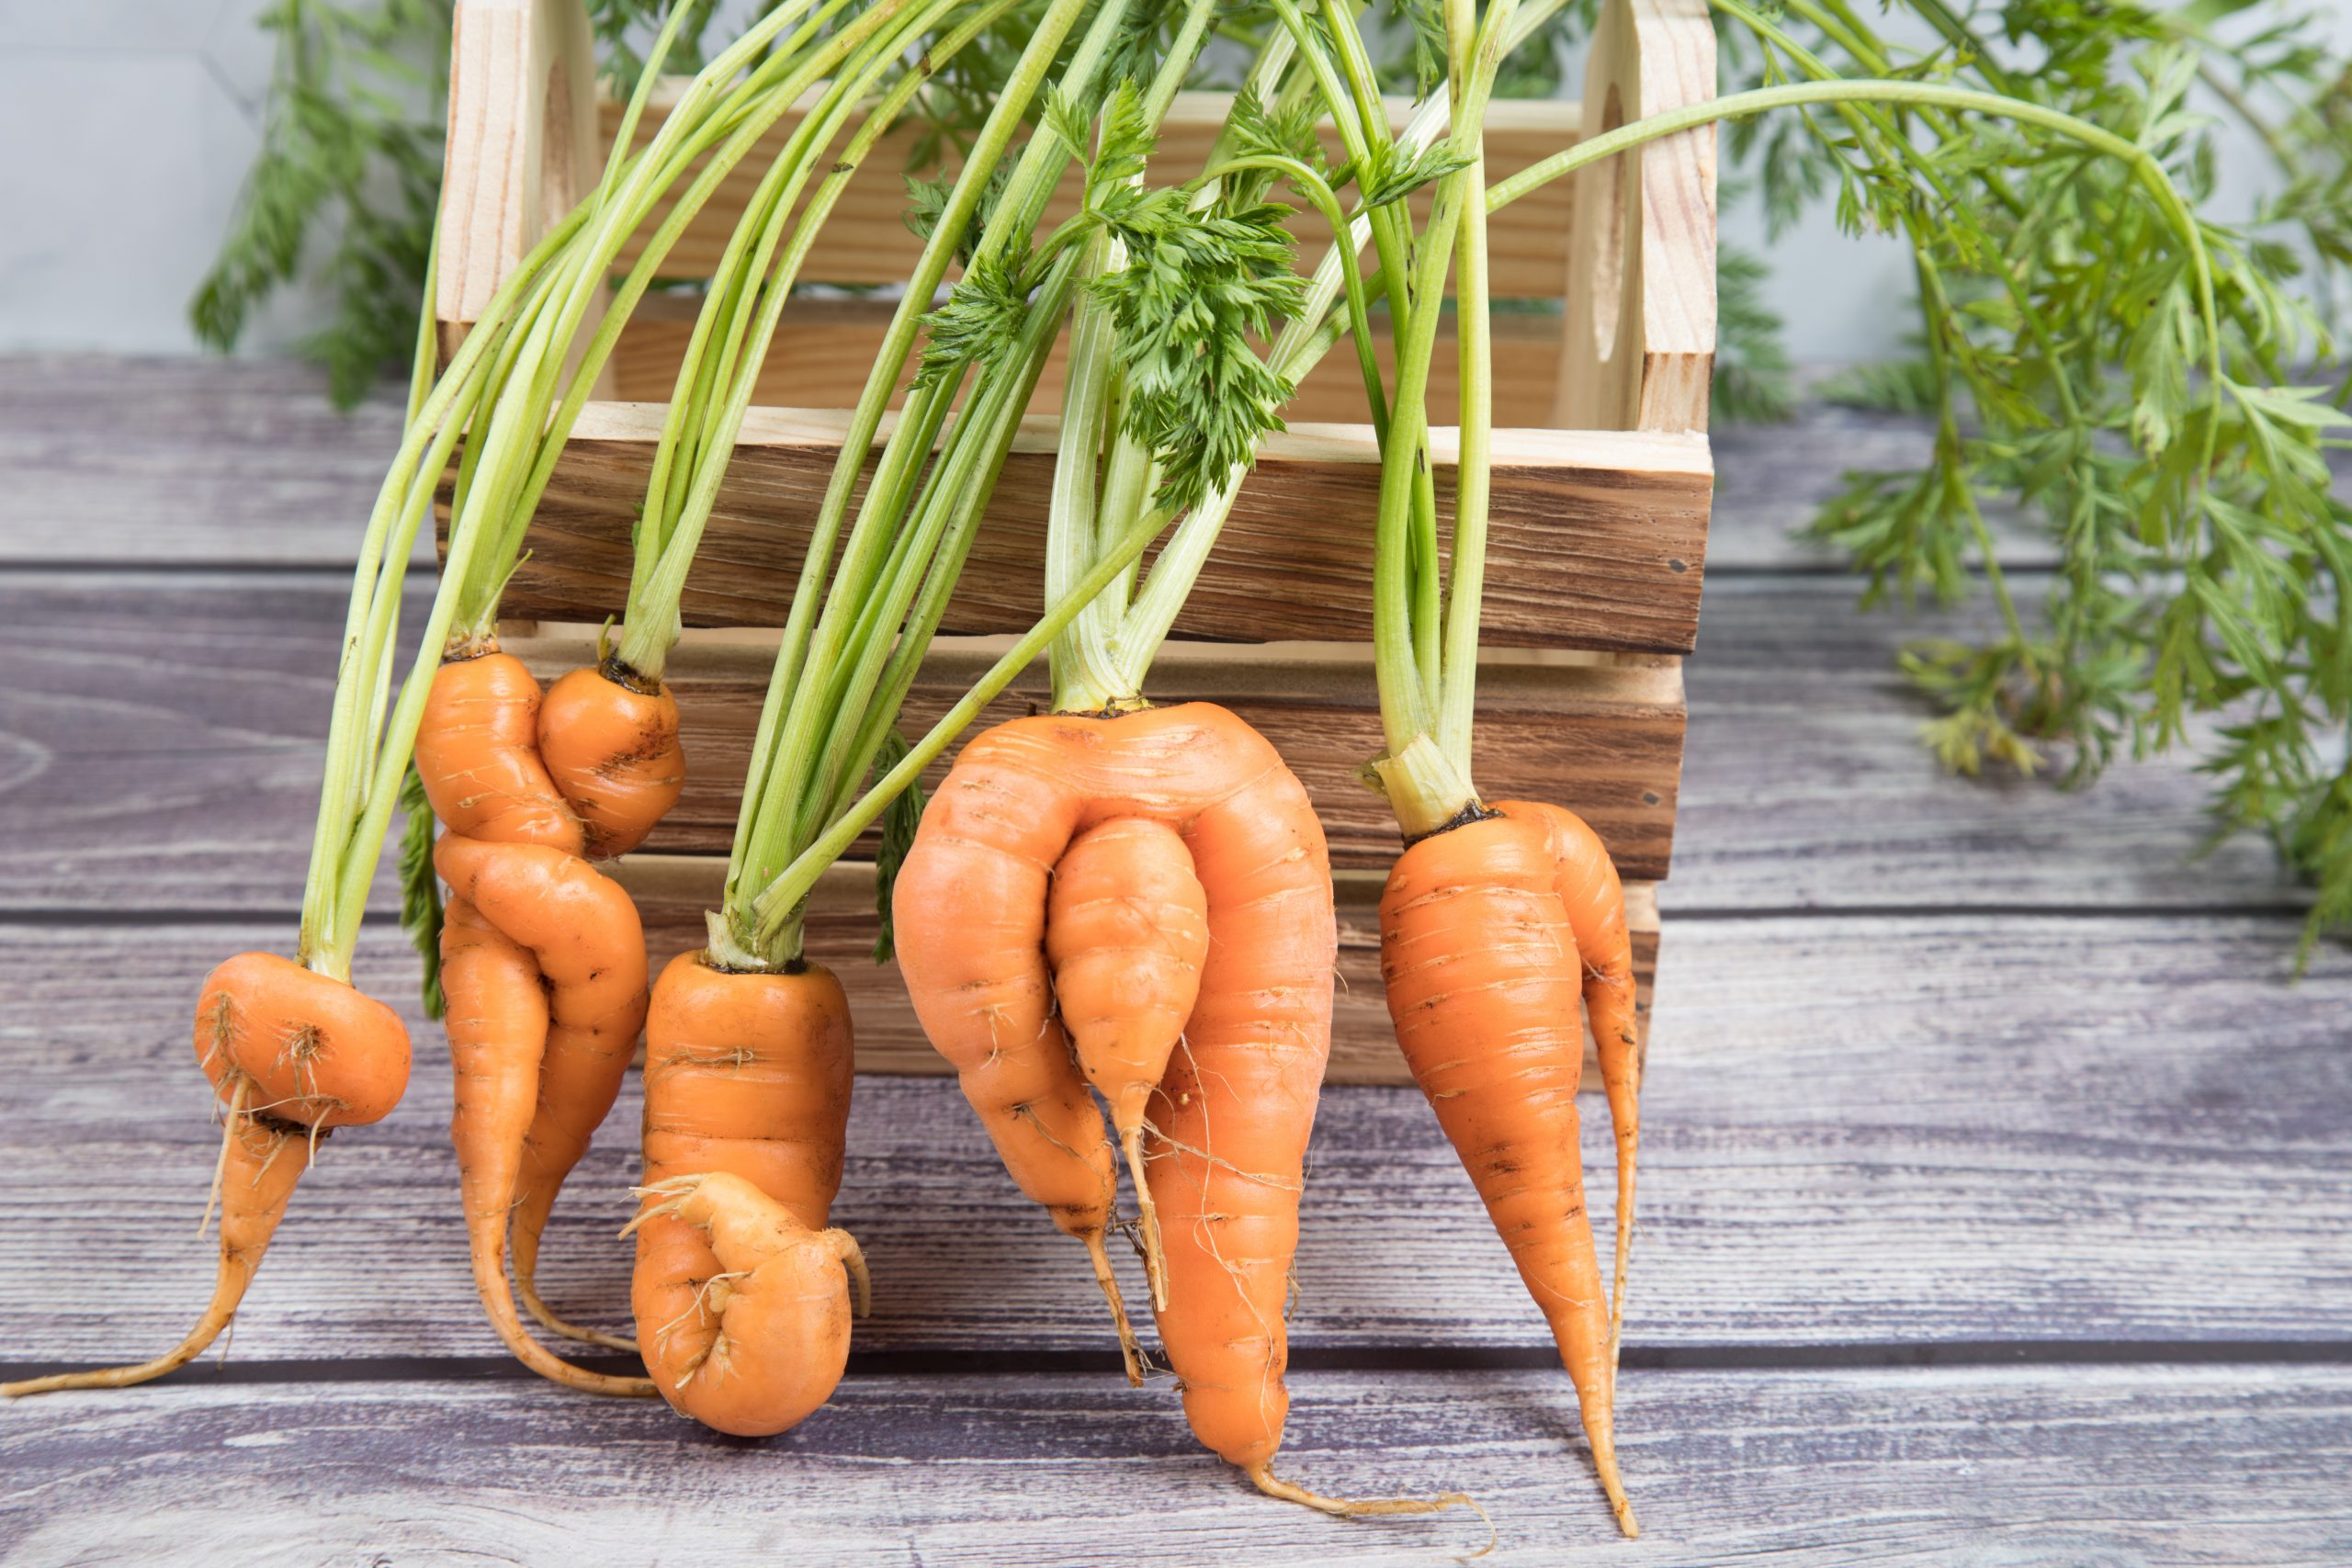 A,Few,Deformed,,Ugly,Carrot,Roots,With,A,Bizarre,Shape